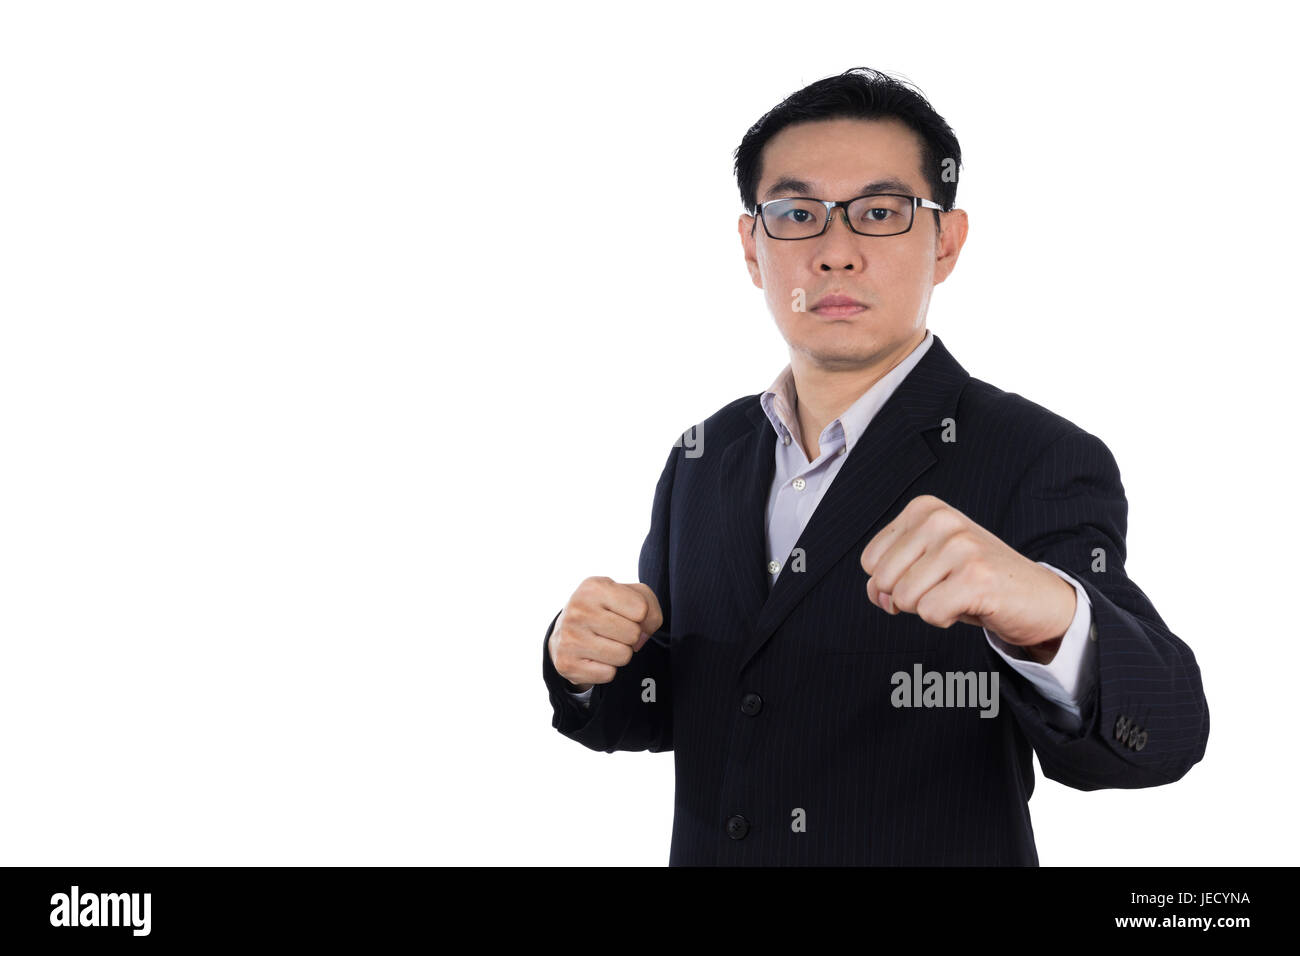 Angry Asian Chinese man wearing suit and holding both fist in isolated white background. - Stock Image